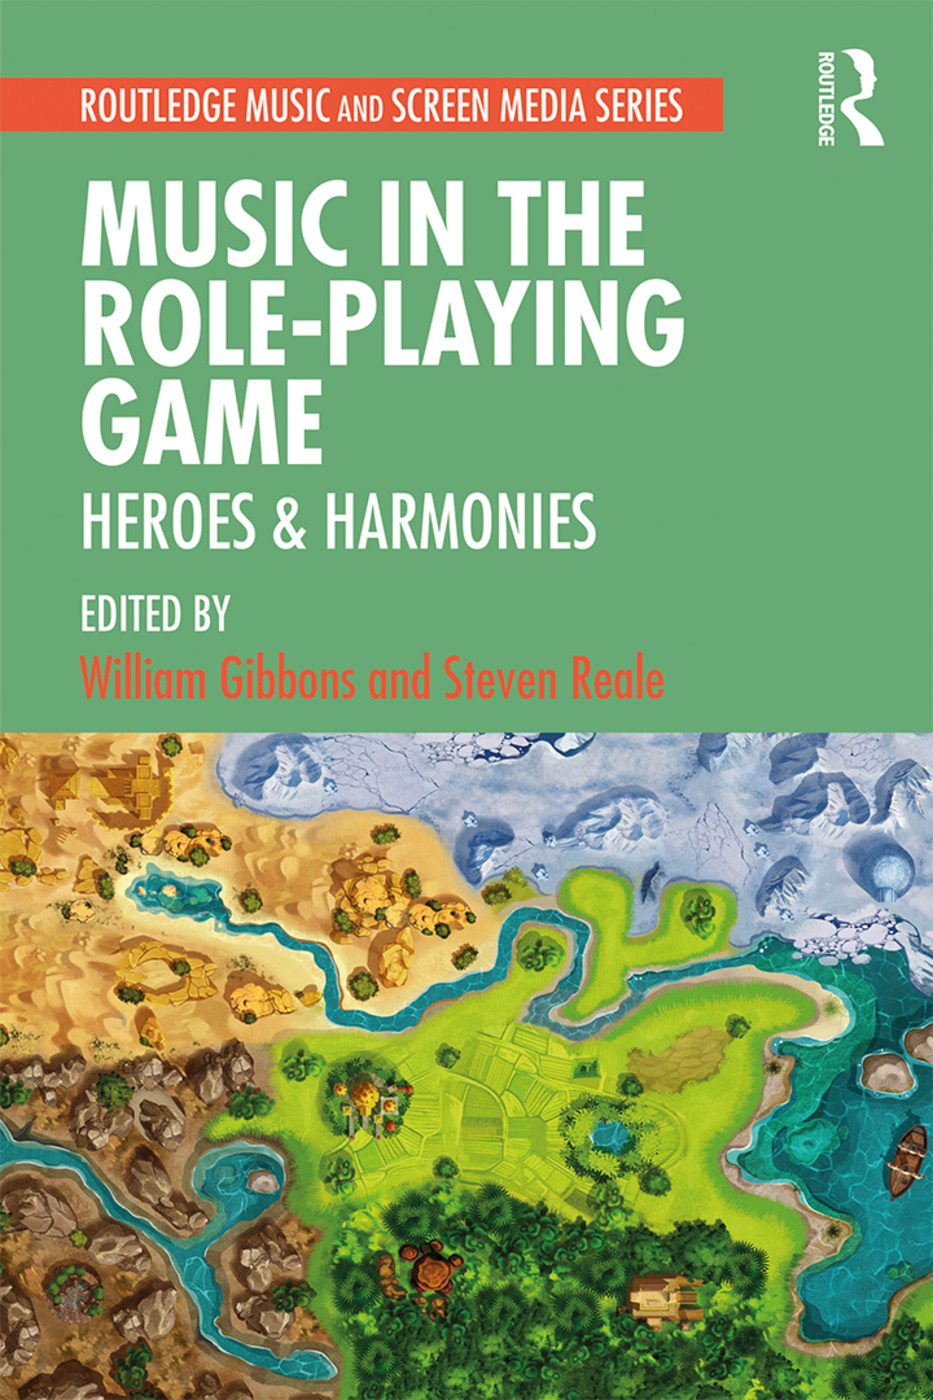 Music in the Role-Playing Game